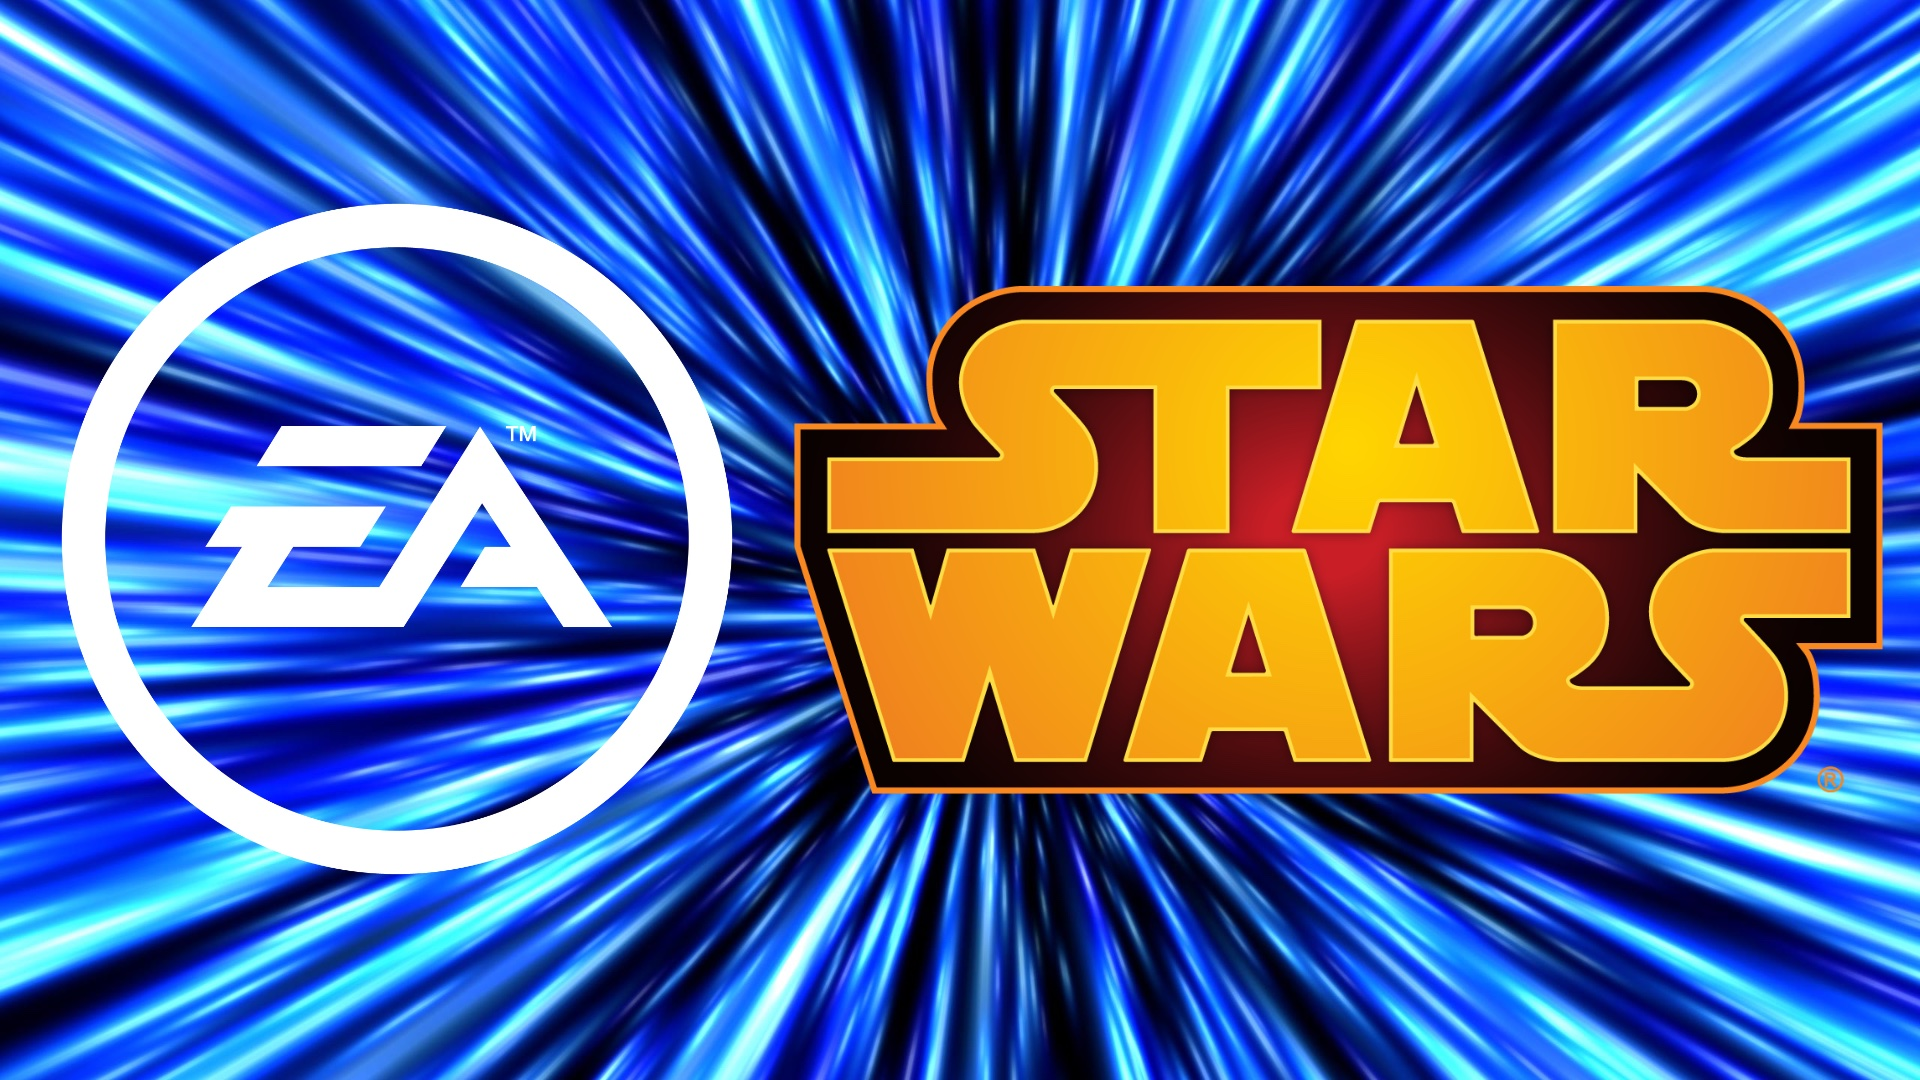 Do or do not, there is no try – Electronic Arts and Star Wars